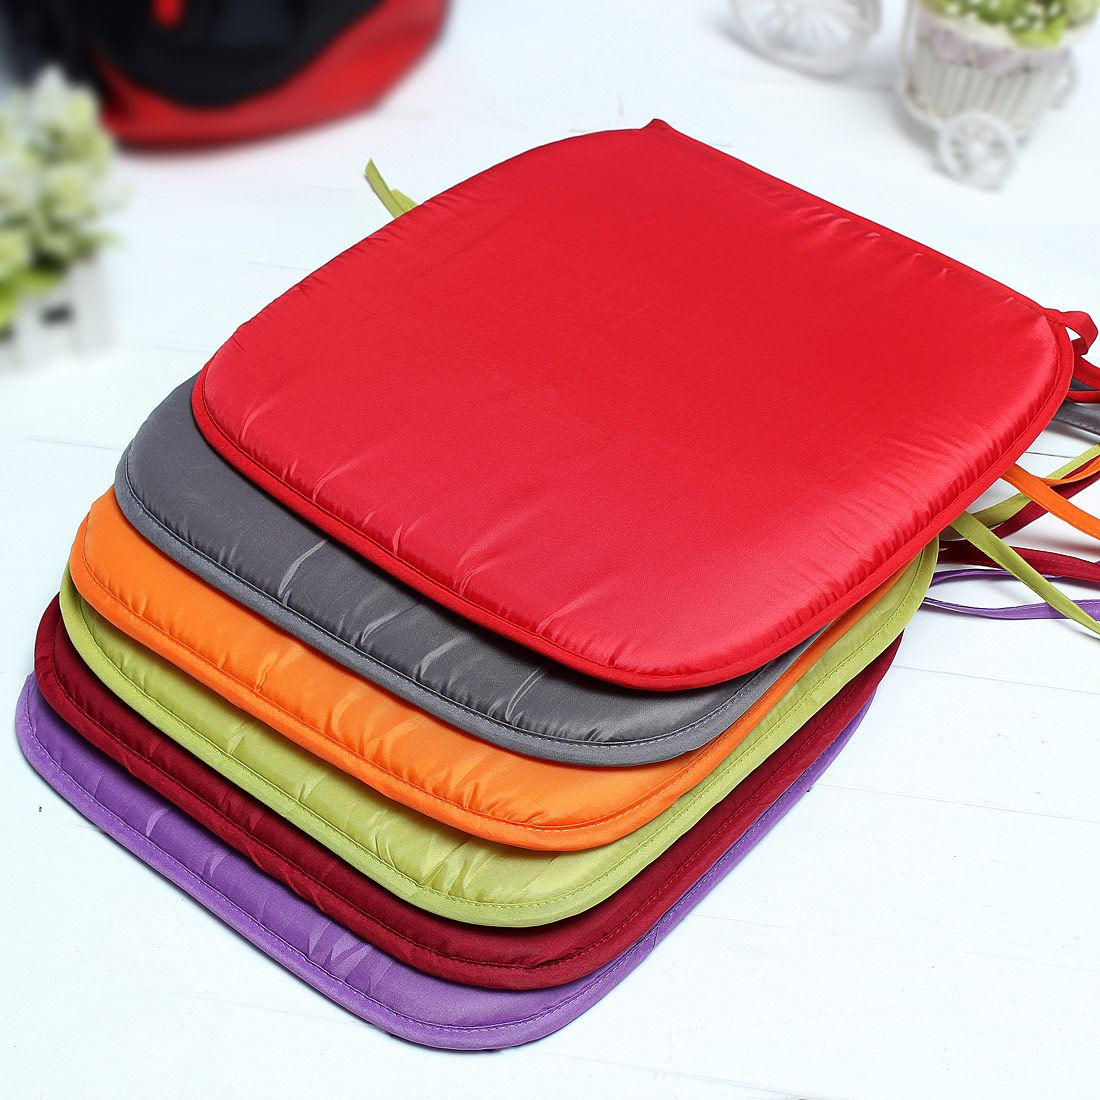 wholesale chair cushions leg covers for hardwood floors online buy mat from china